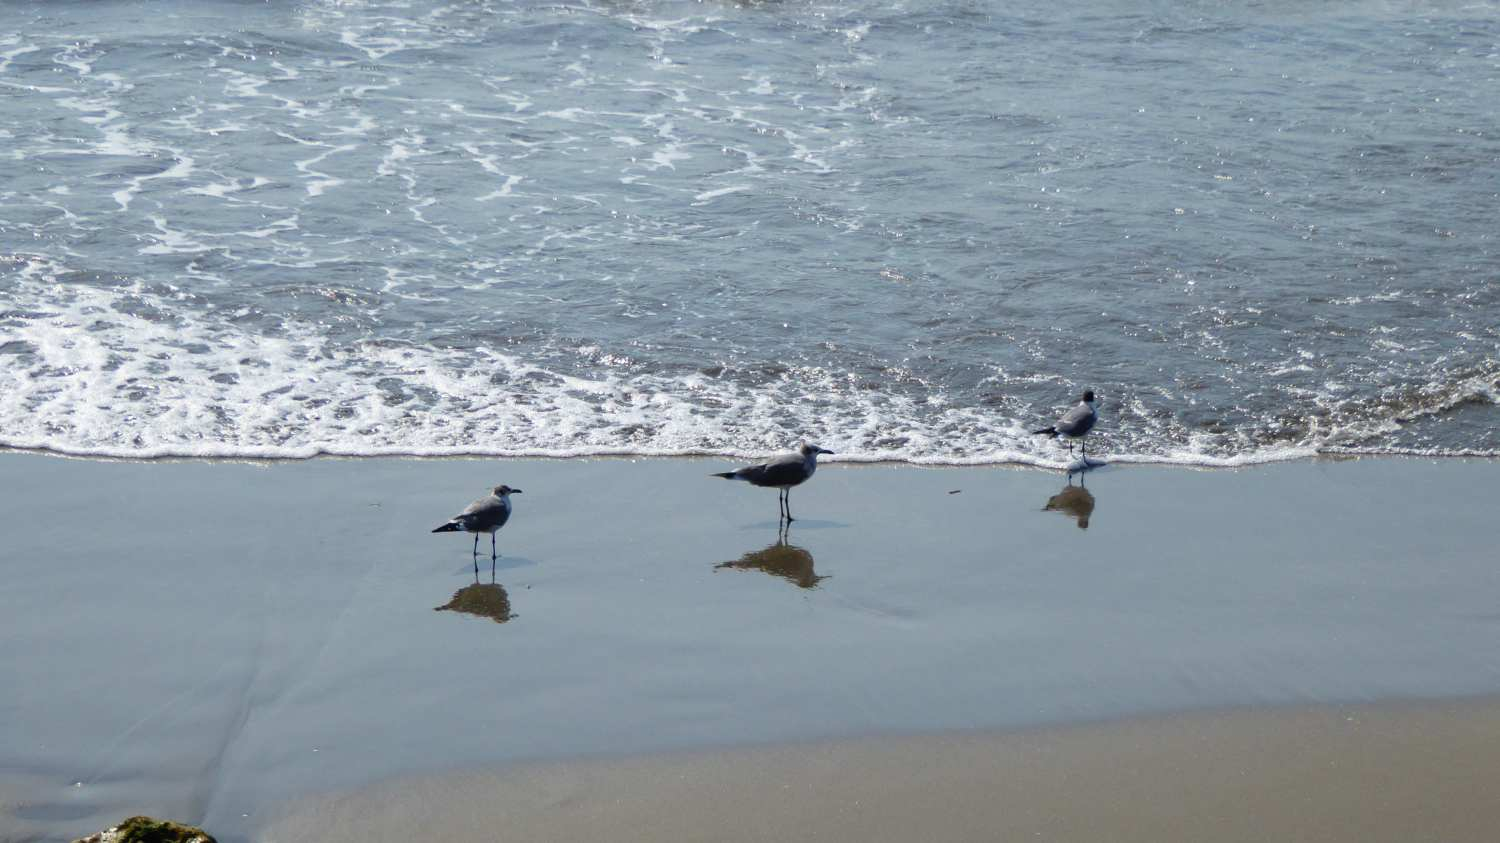 ... and some birds